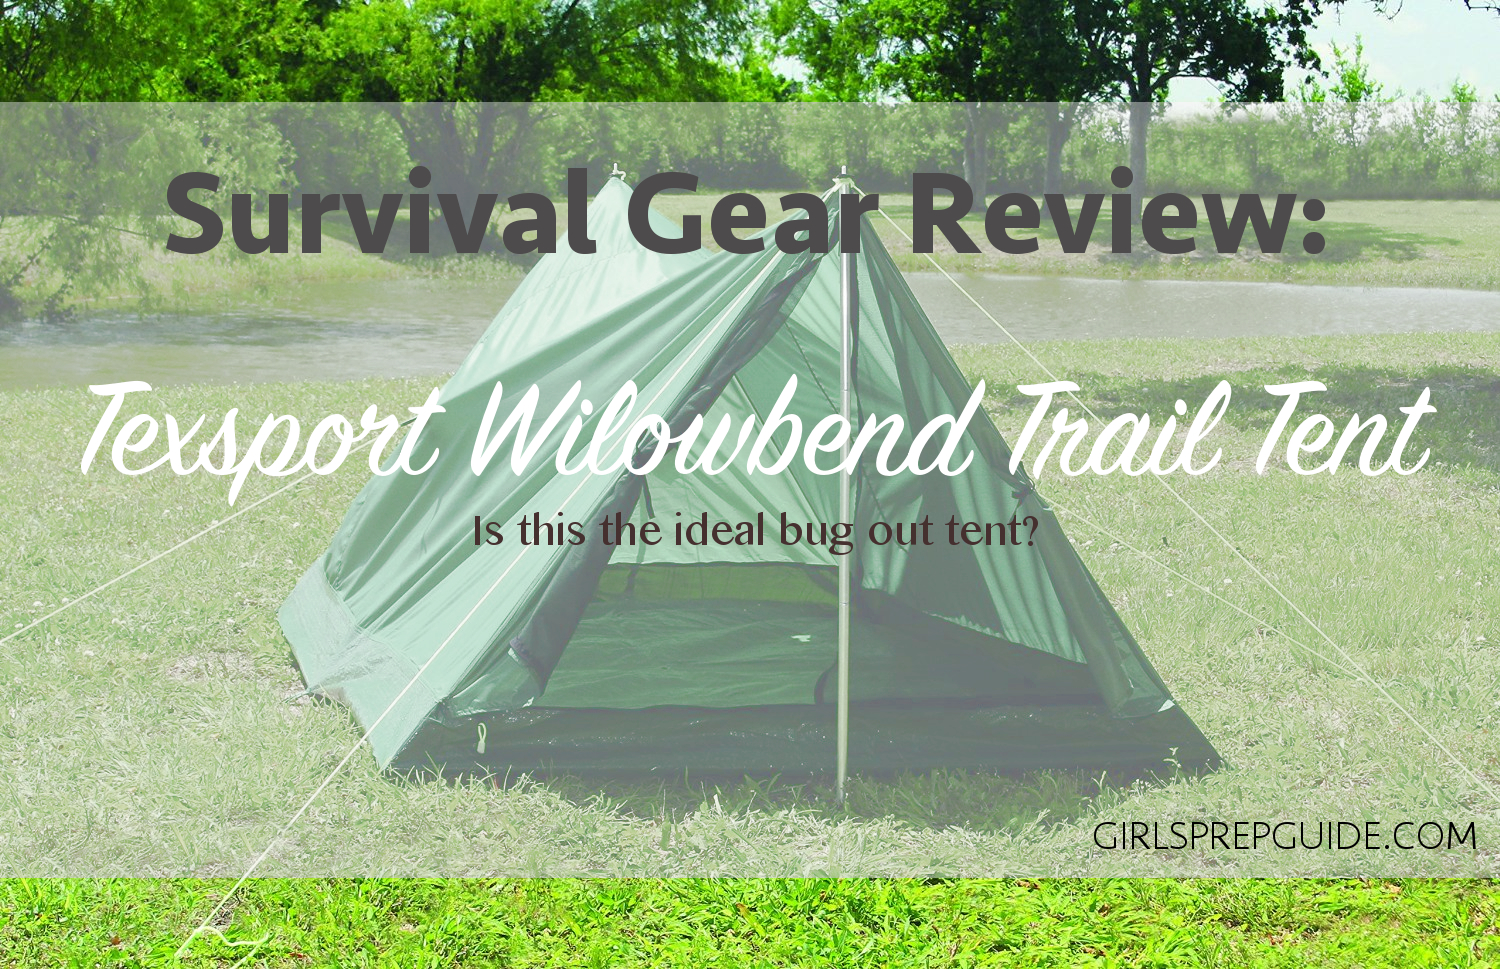 Survival Gear Review Texsport Willowbend Trail Tent & Survival Gear Review: Texsport Willowbend Trail Tent - A Girlu0027s ...